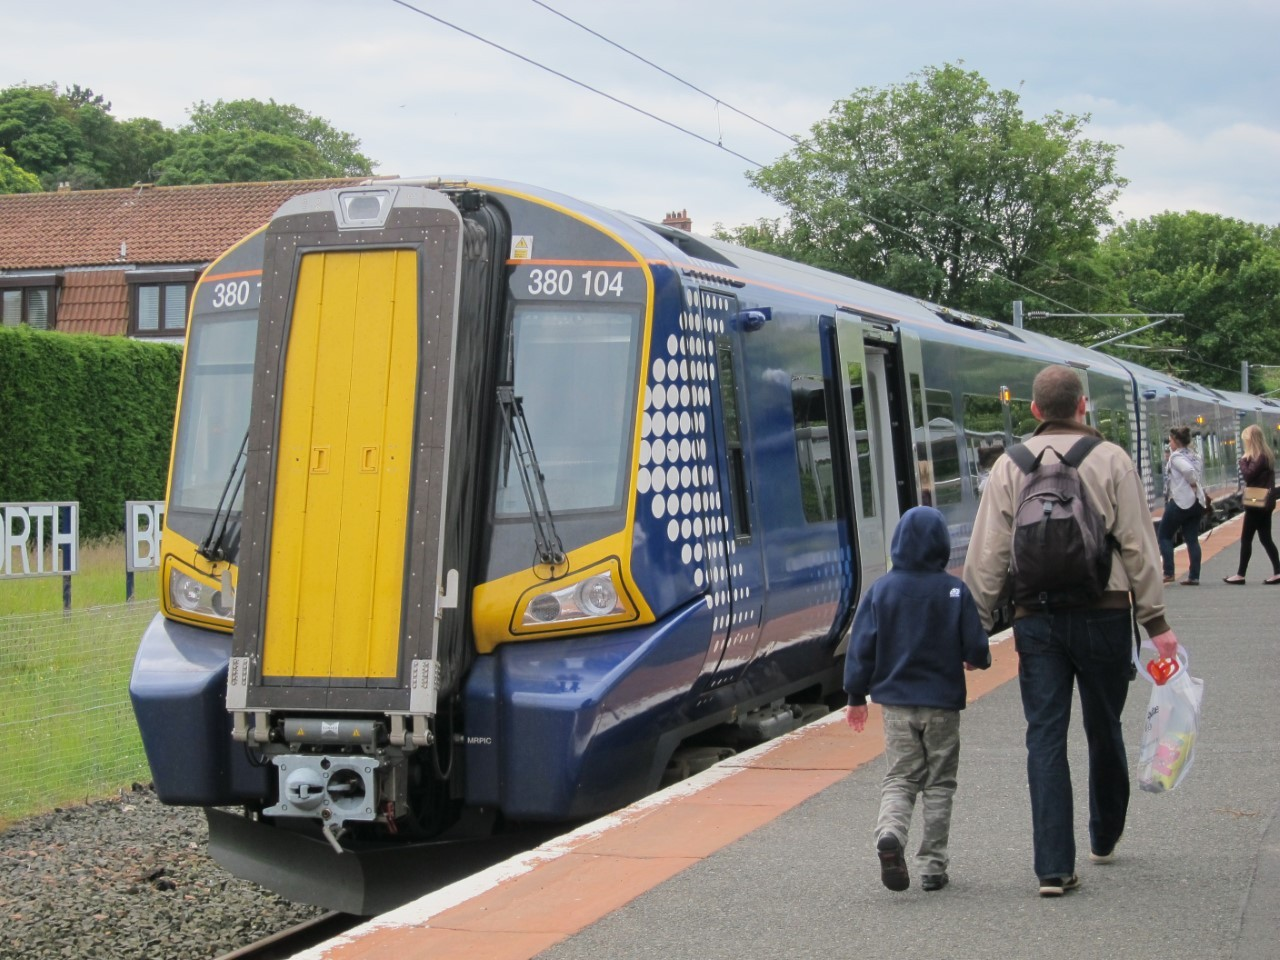 Half-price train tickets for over-60s will cease to apply from Monday. Image ScotRail Alliance